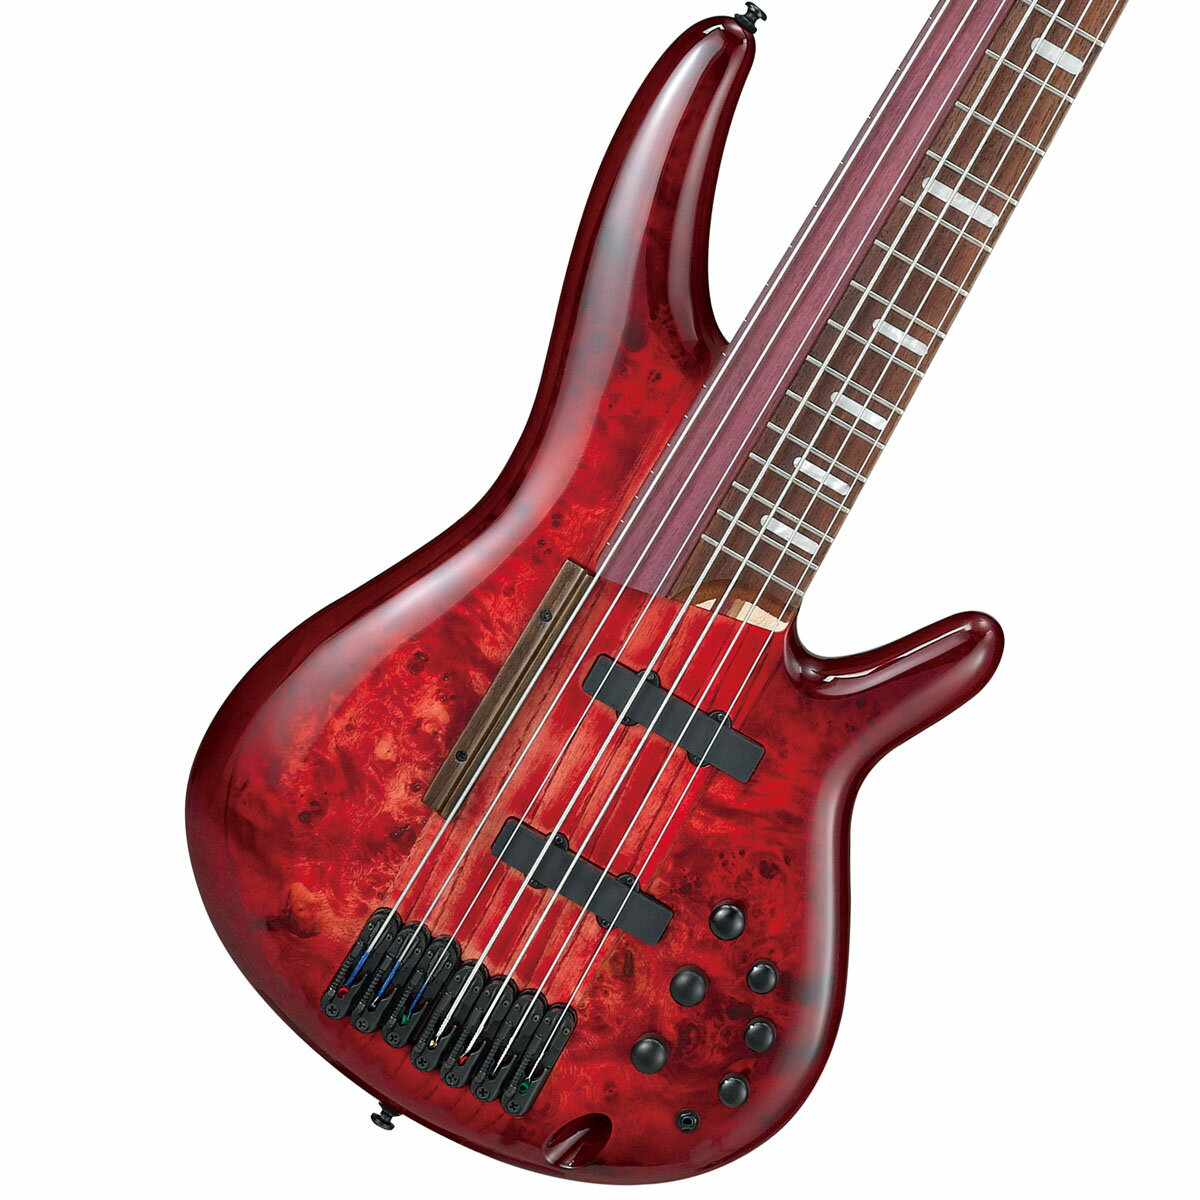 Ibanez / SRAS7 Raspberry Stained Burst Gloss (RSG) アイバニーズ 阿修羅ベース